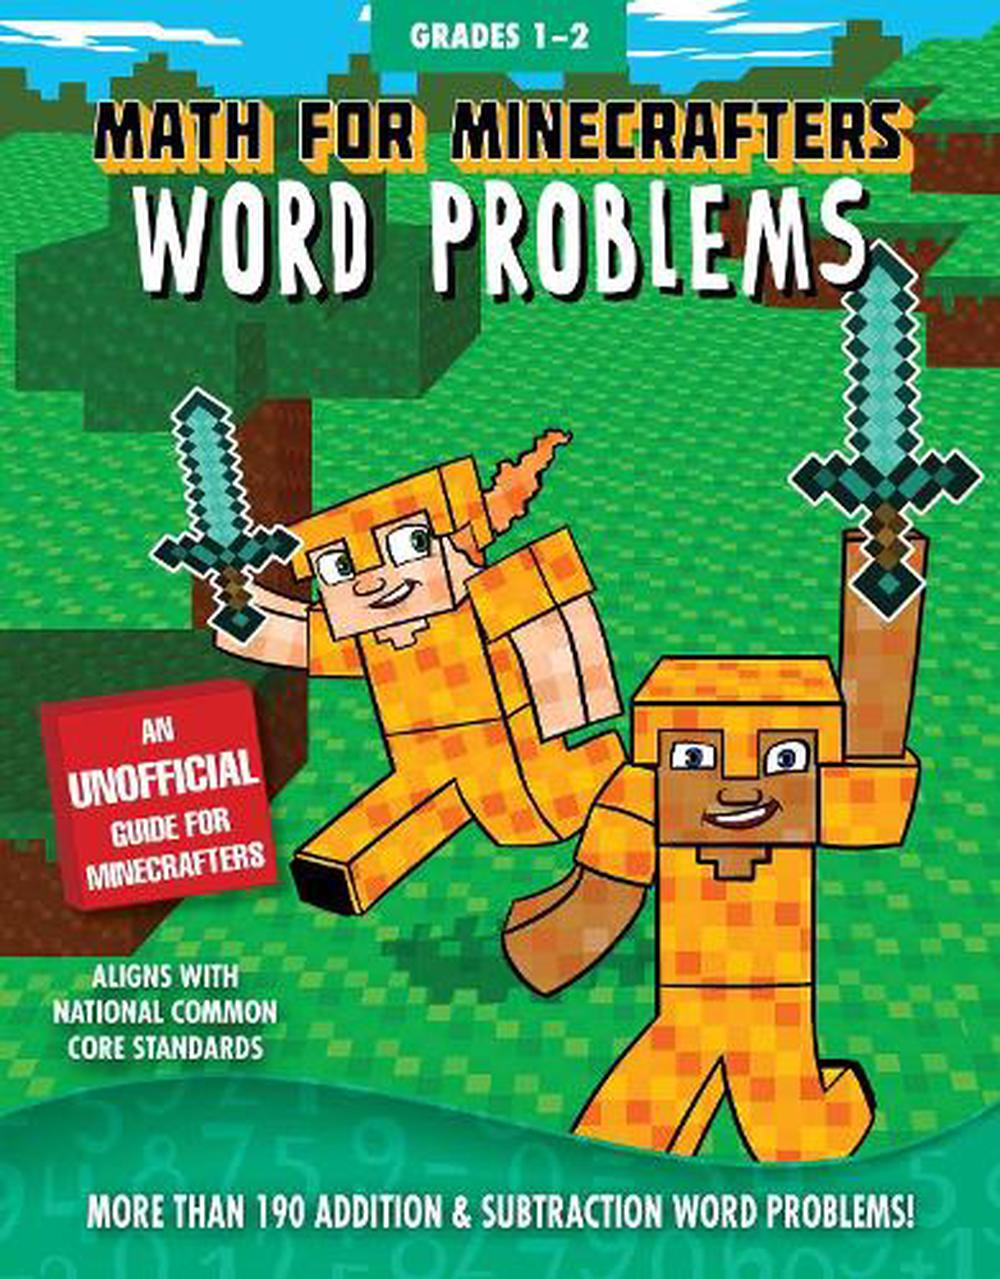 Math for Minecrafters Word ProblemsGrades 1-2